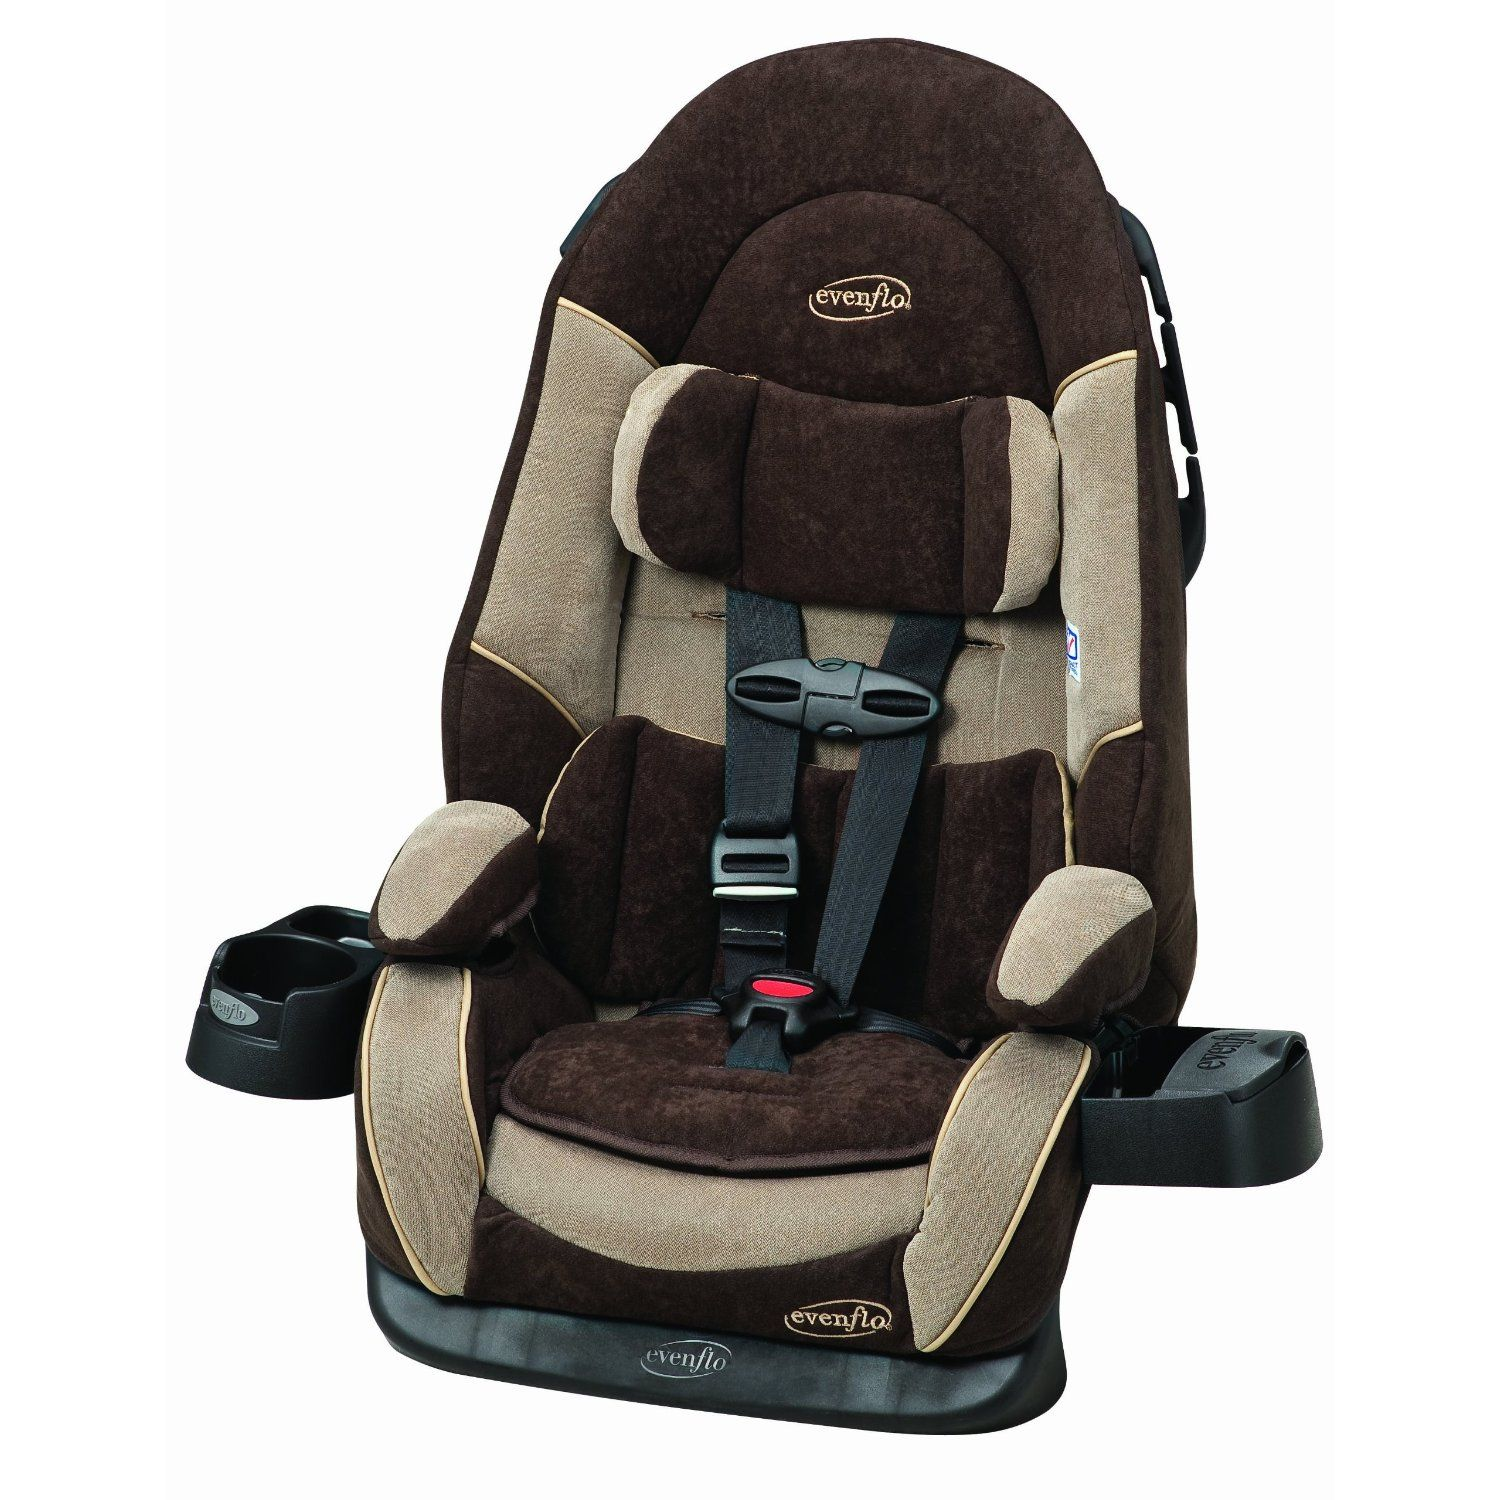 Child Safety Booster Car Seats. Evenflo Chase DLX Harness